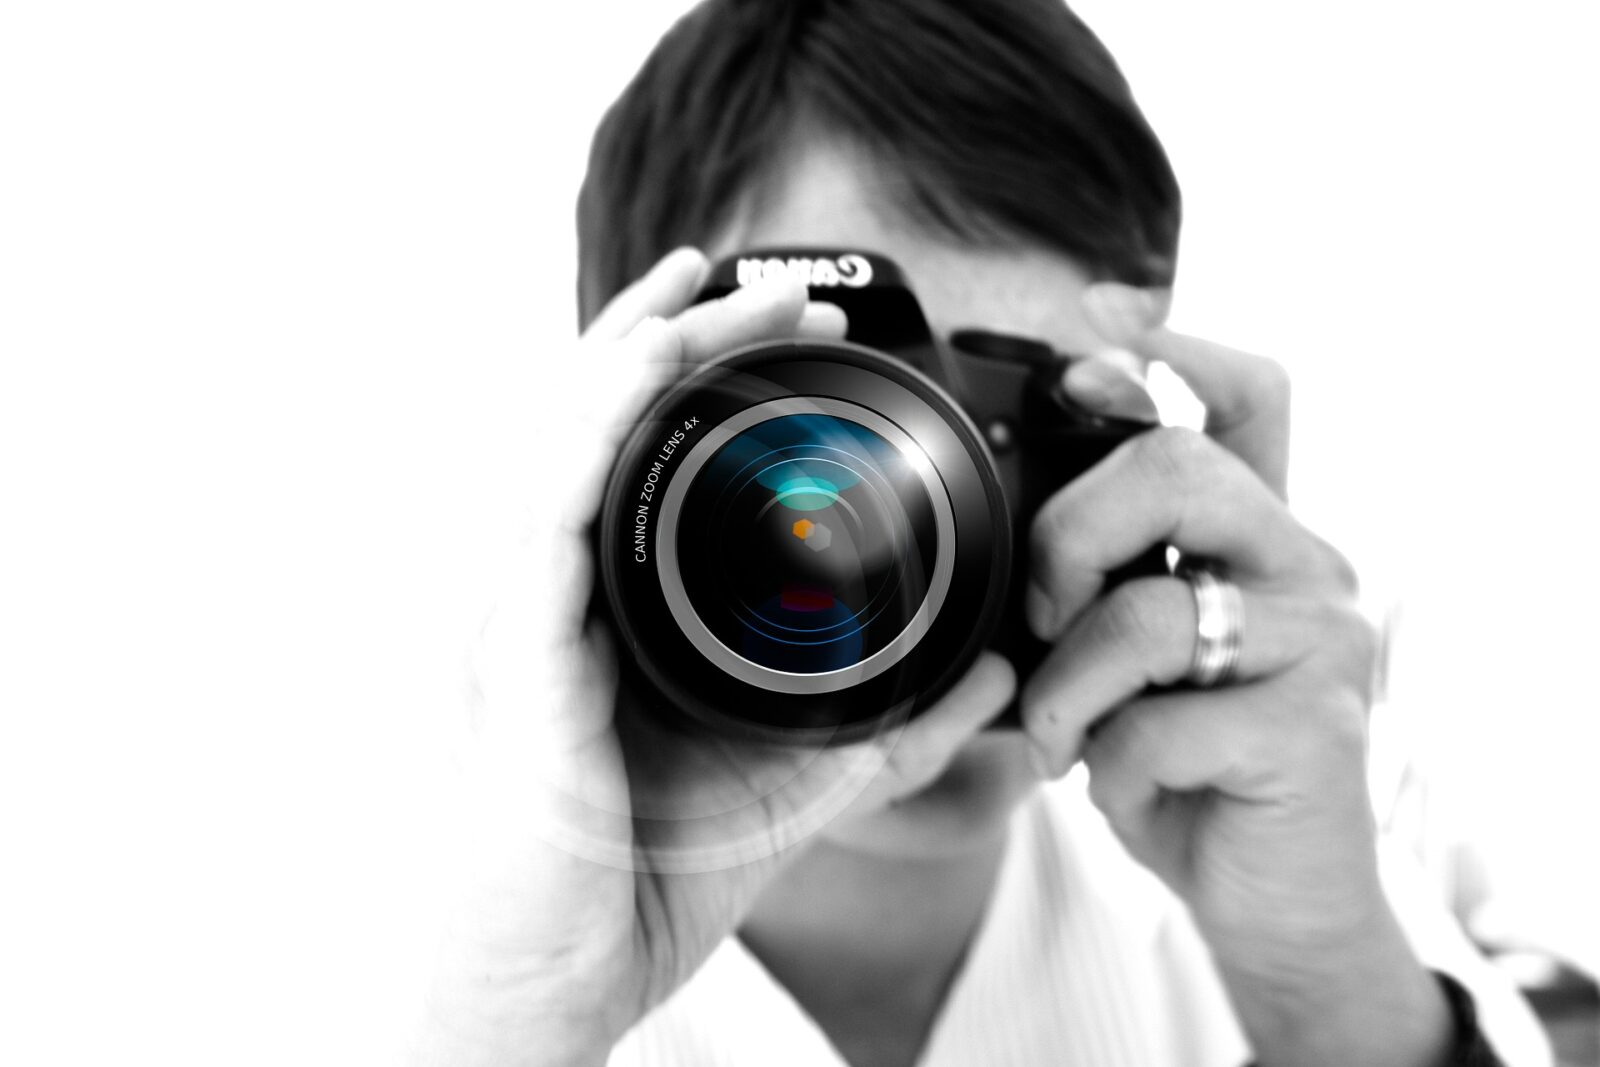 Qualities of a photographer